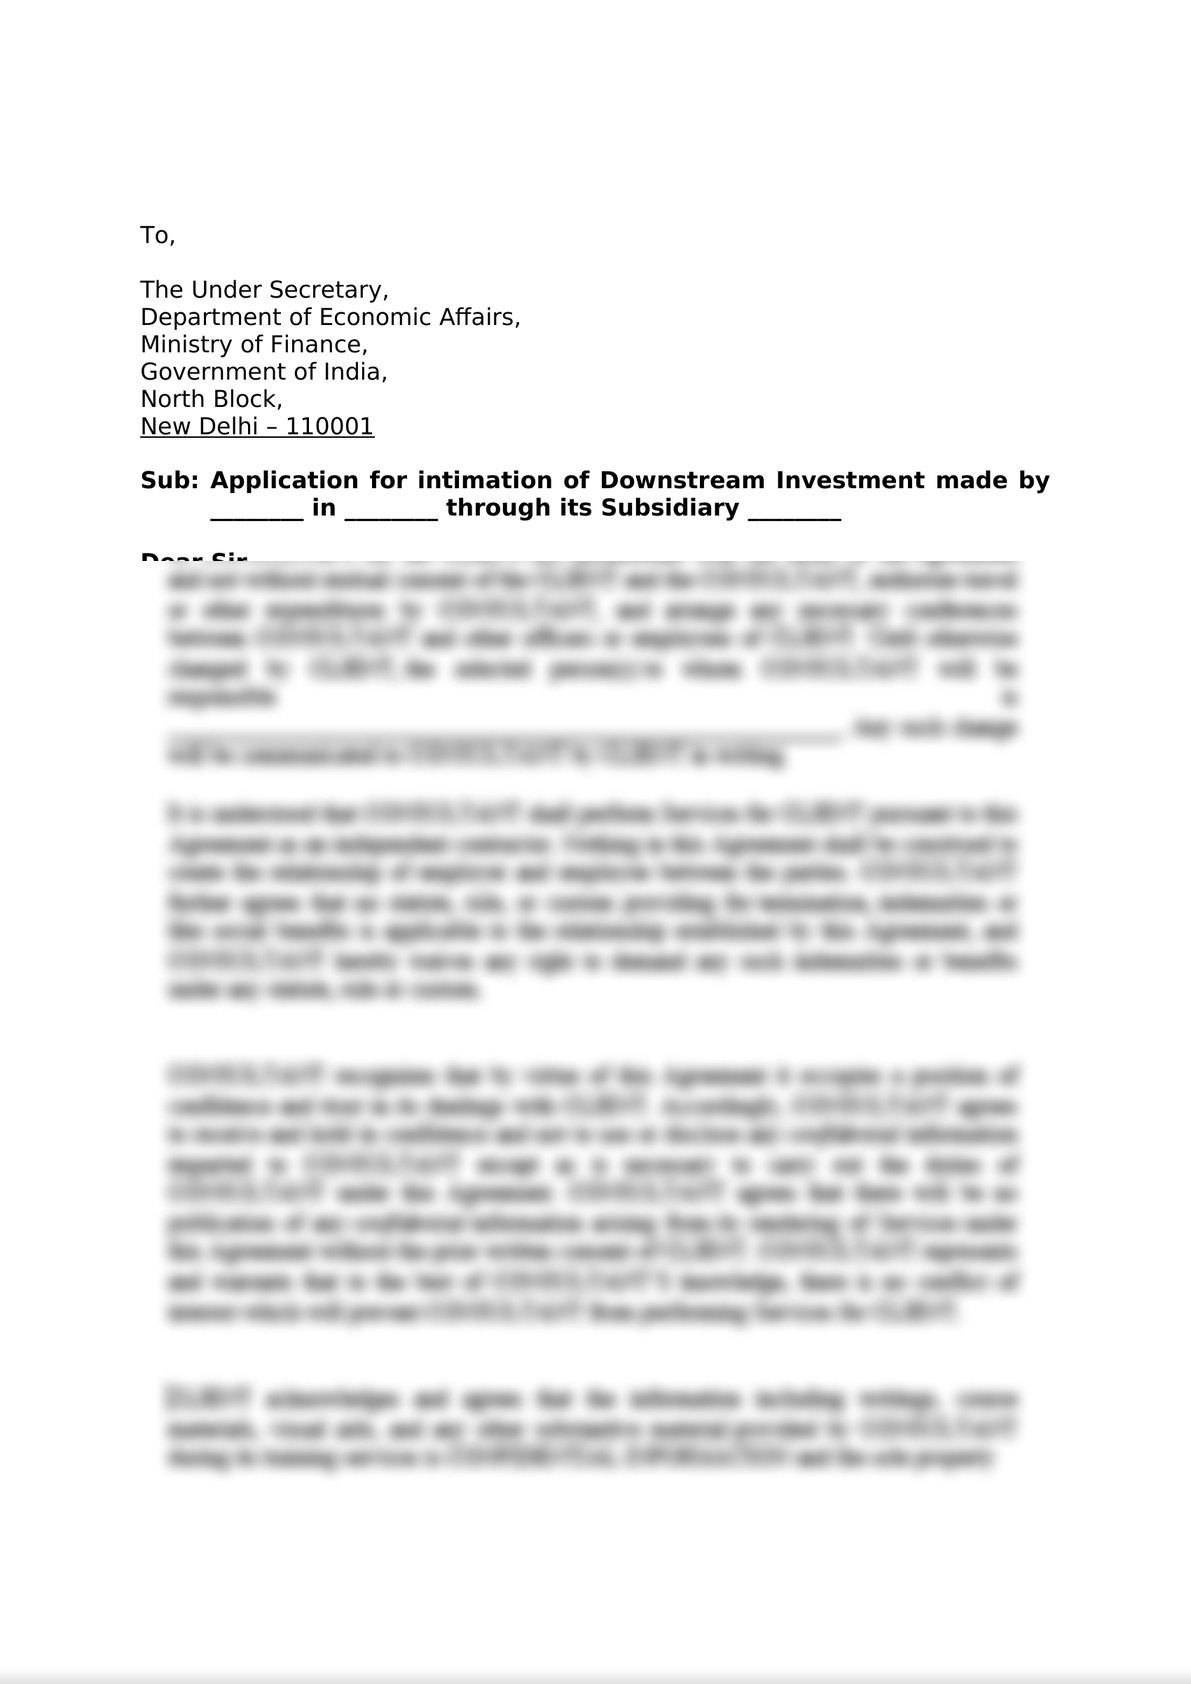 Application for intimation of Downstream Investment made by Holding  Company through its Subsidiary Company-0